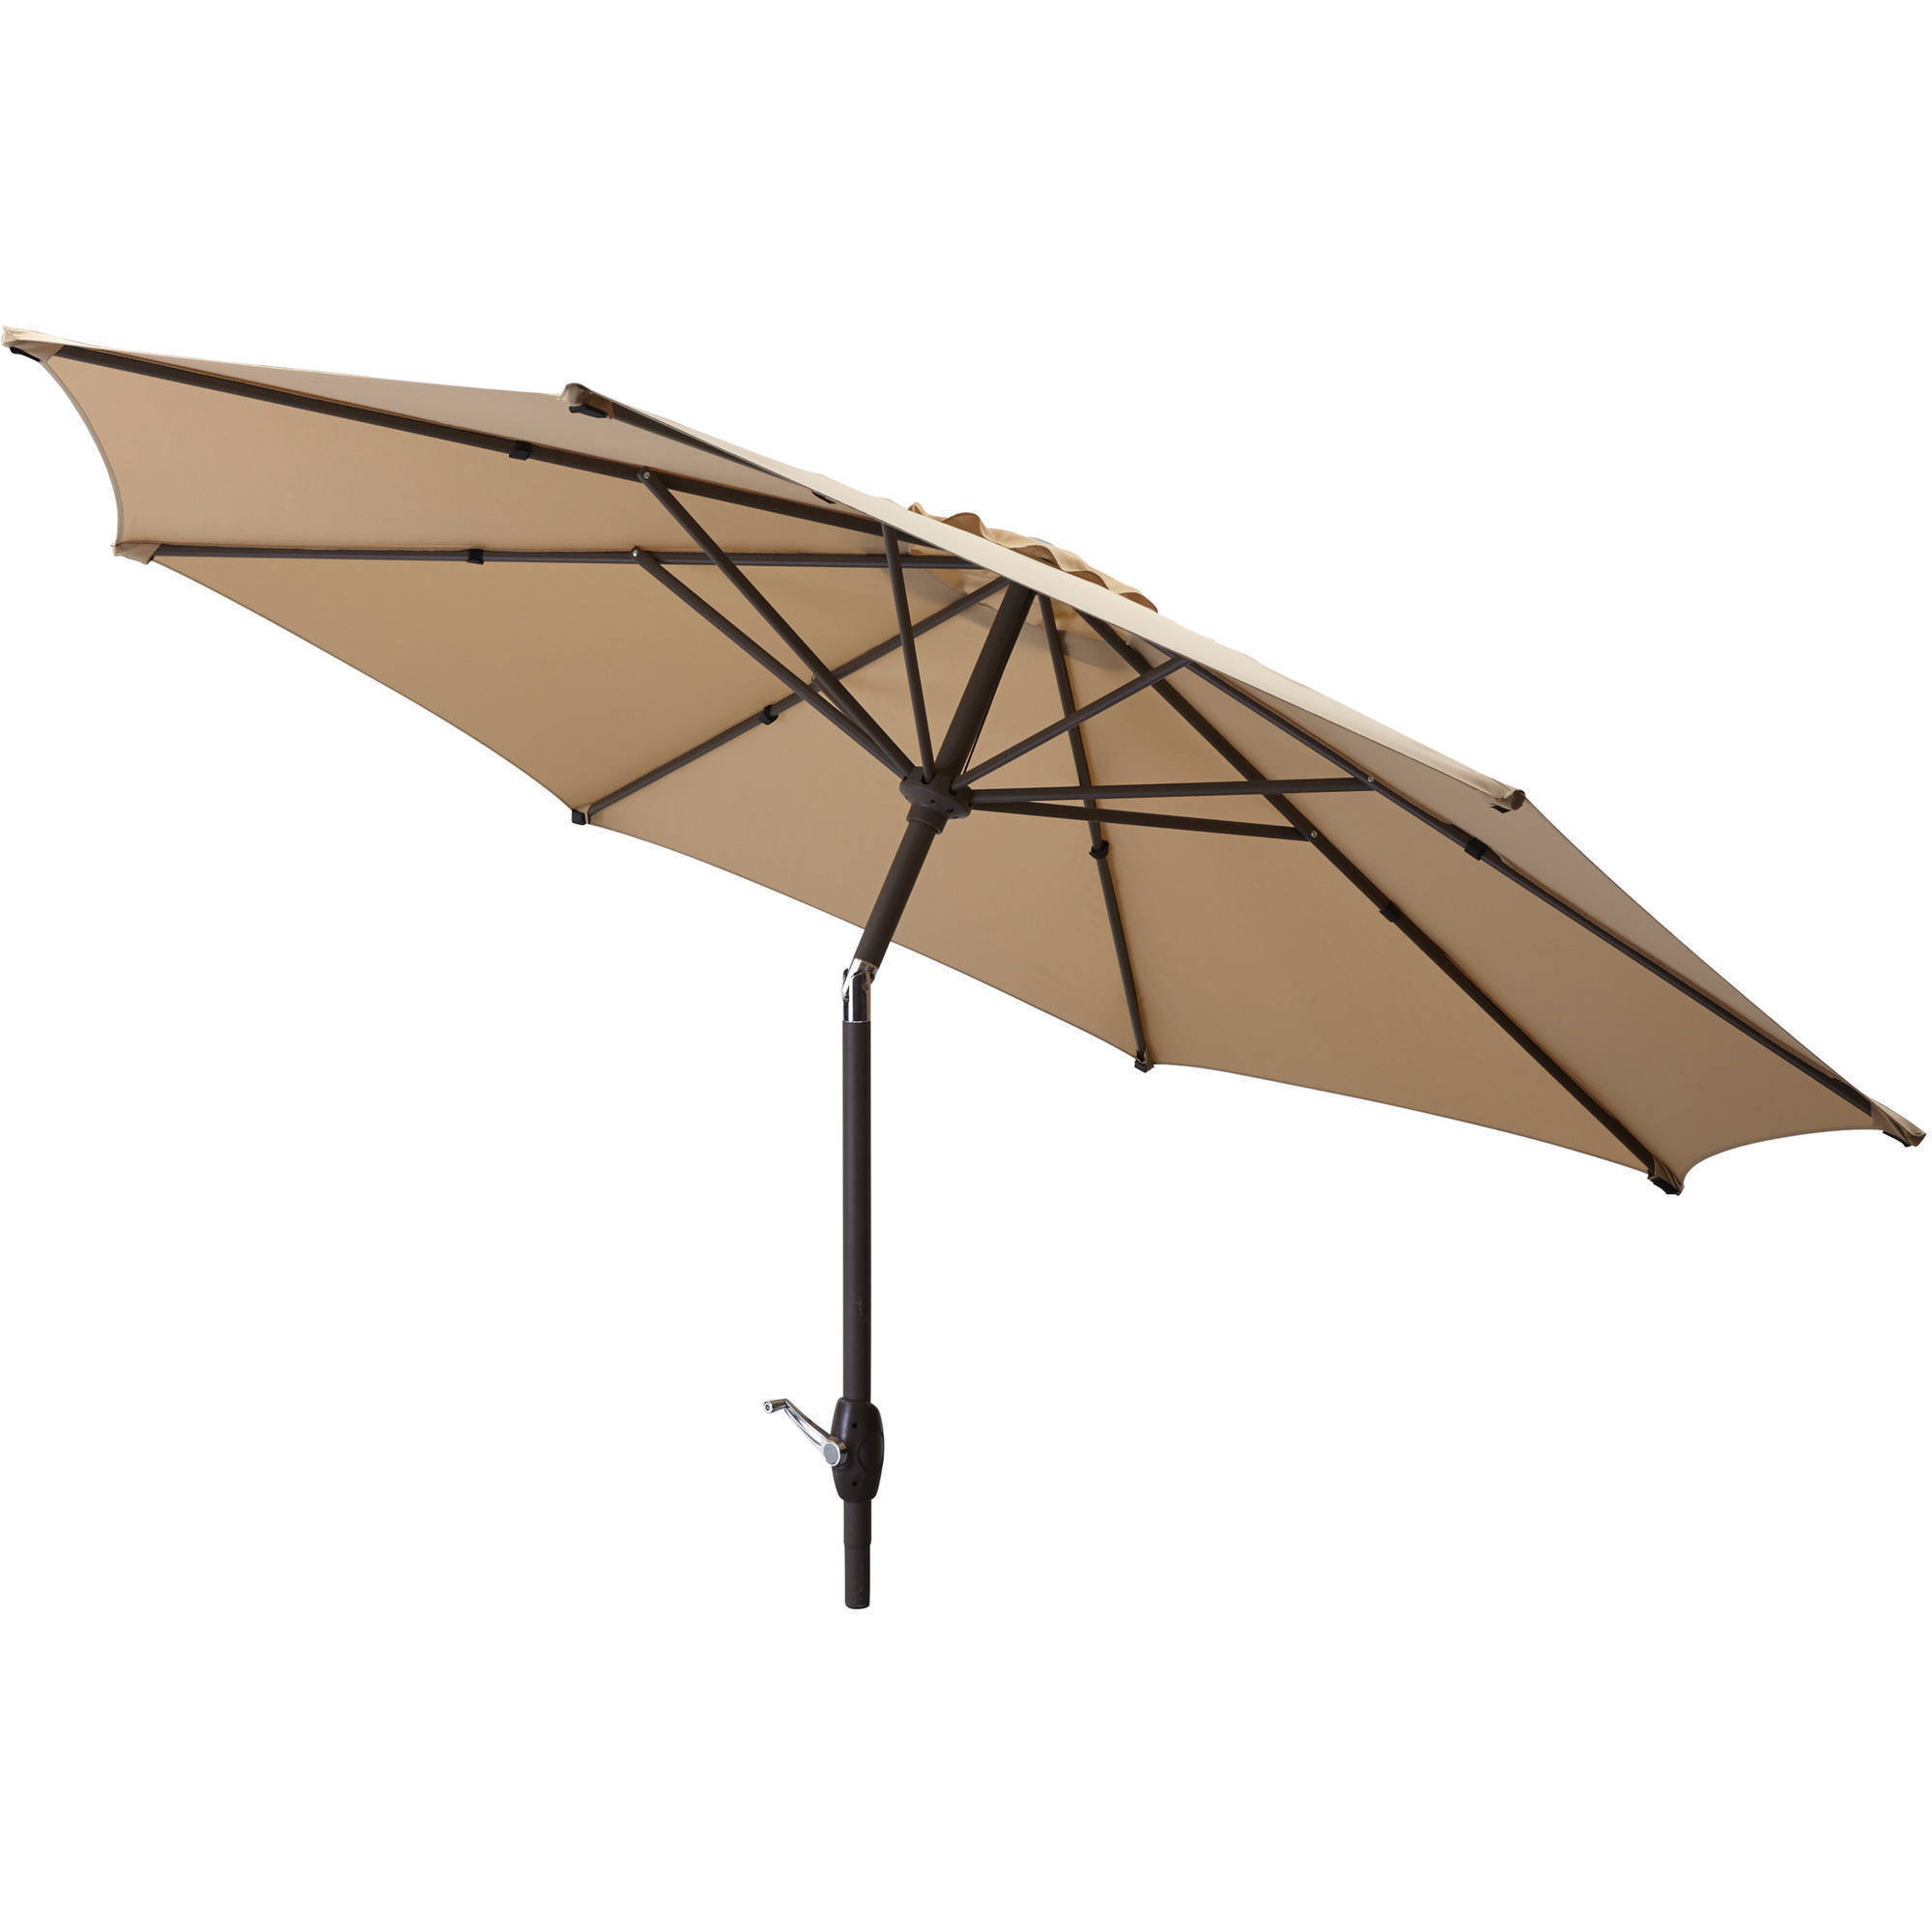 Mainstays 9 ft. Outdoor Market Umbrella - Tan